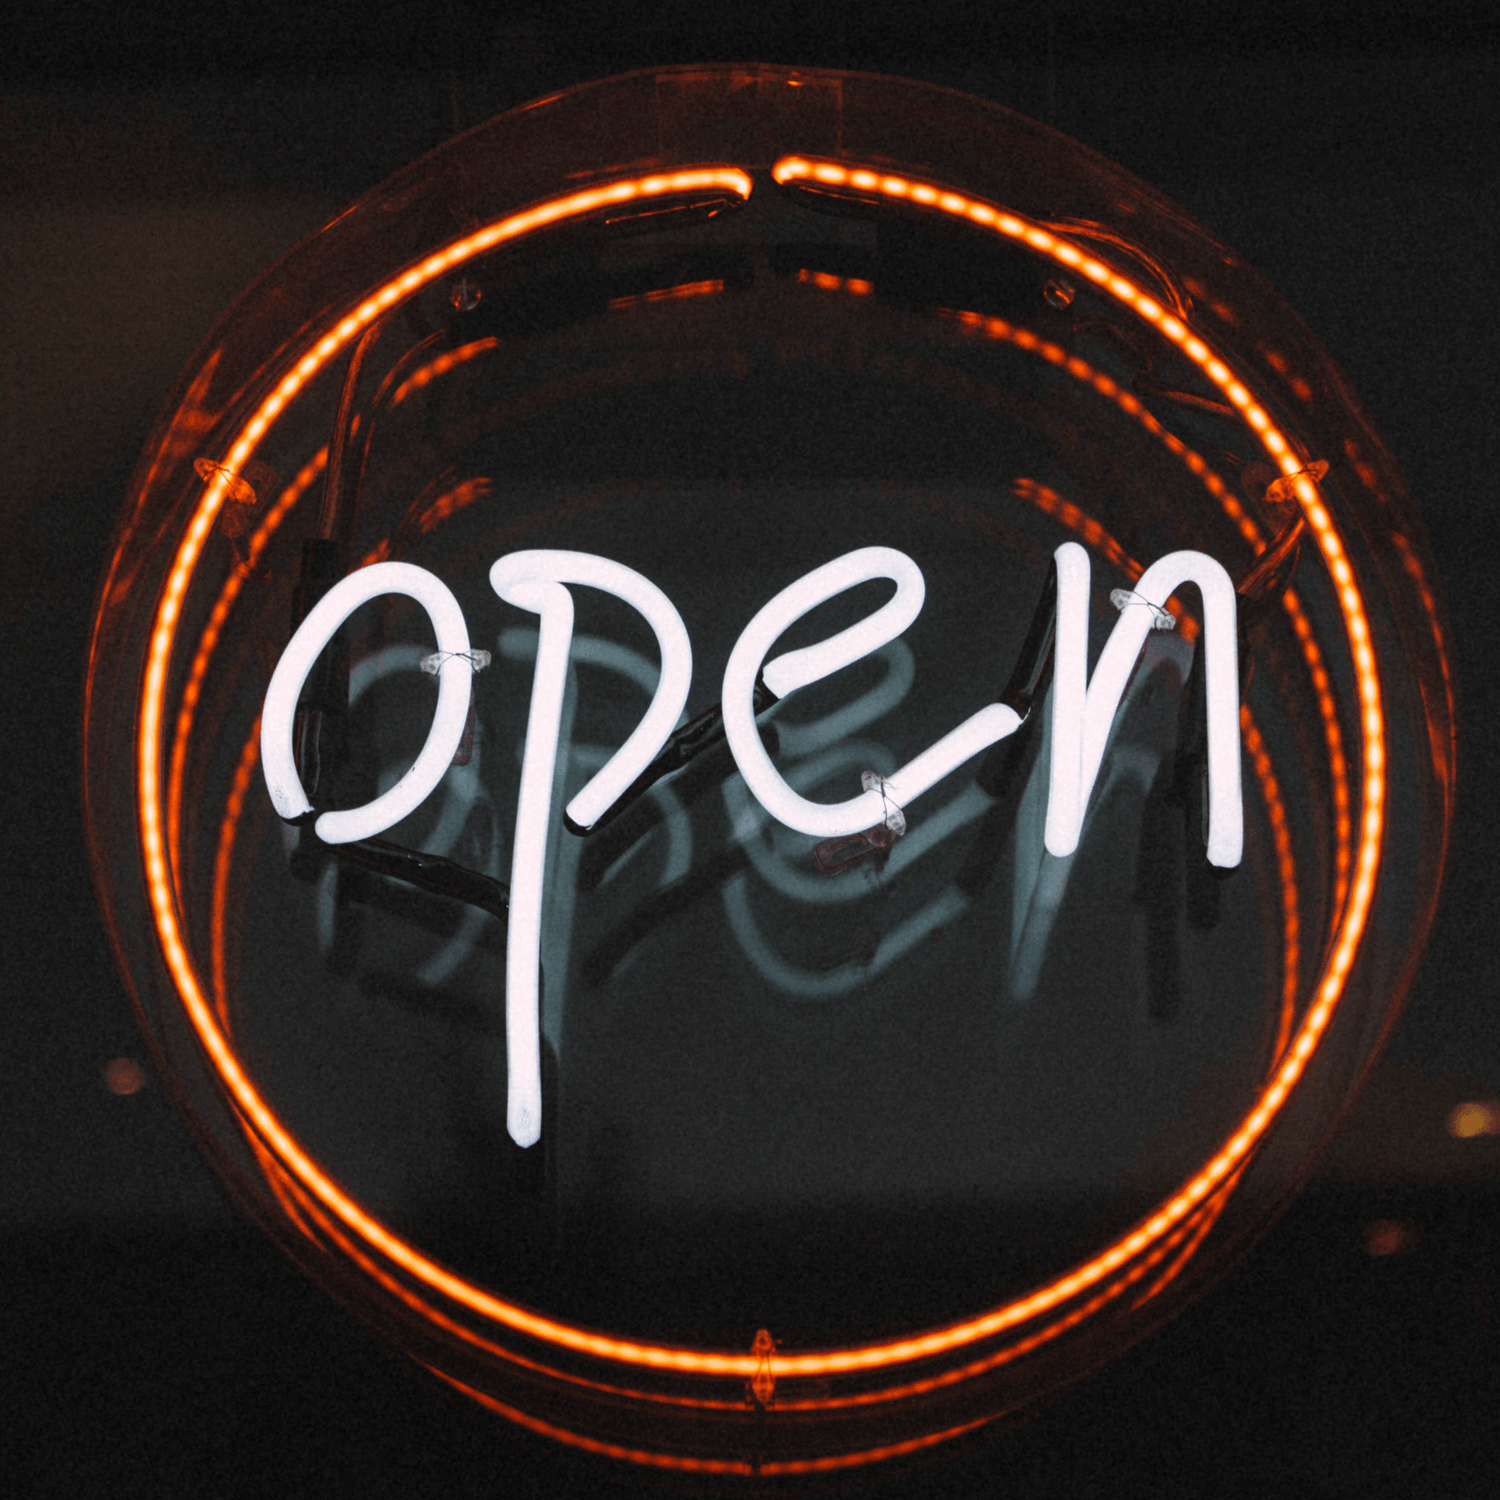 Orange Open sign, Photo by Finn Hackshaw on Unsplash